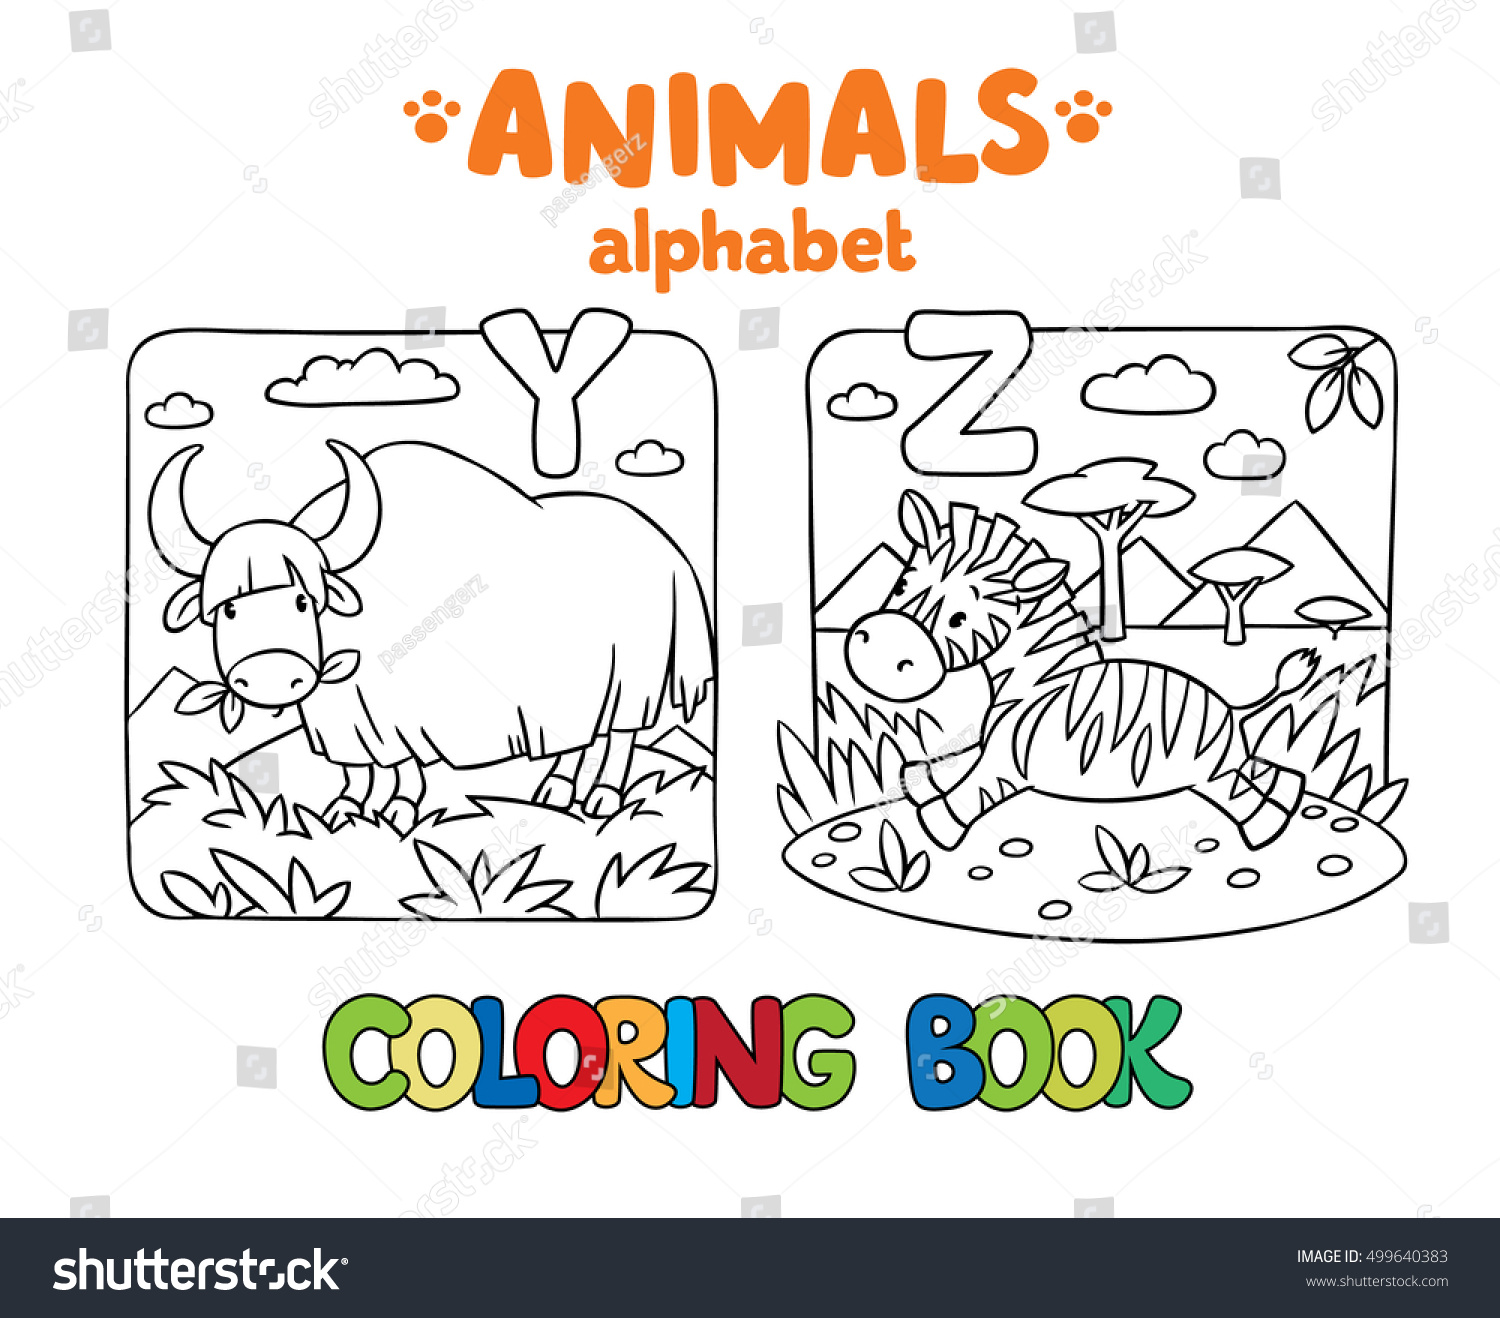 Coloring Book Coloring Picture Funny Yak Stock Vector 499640383 ...